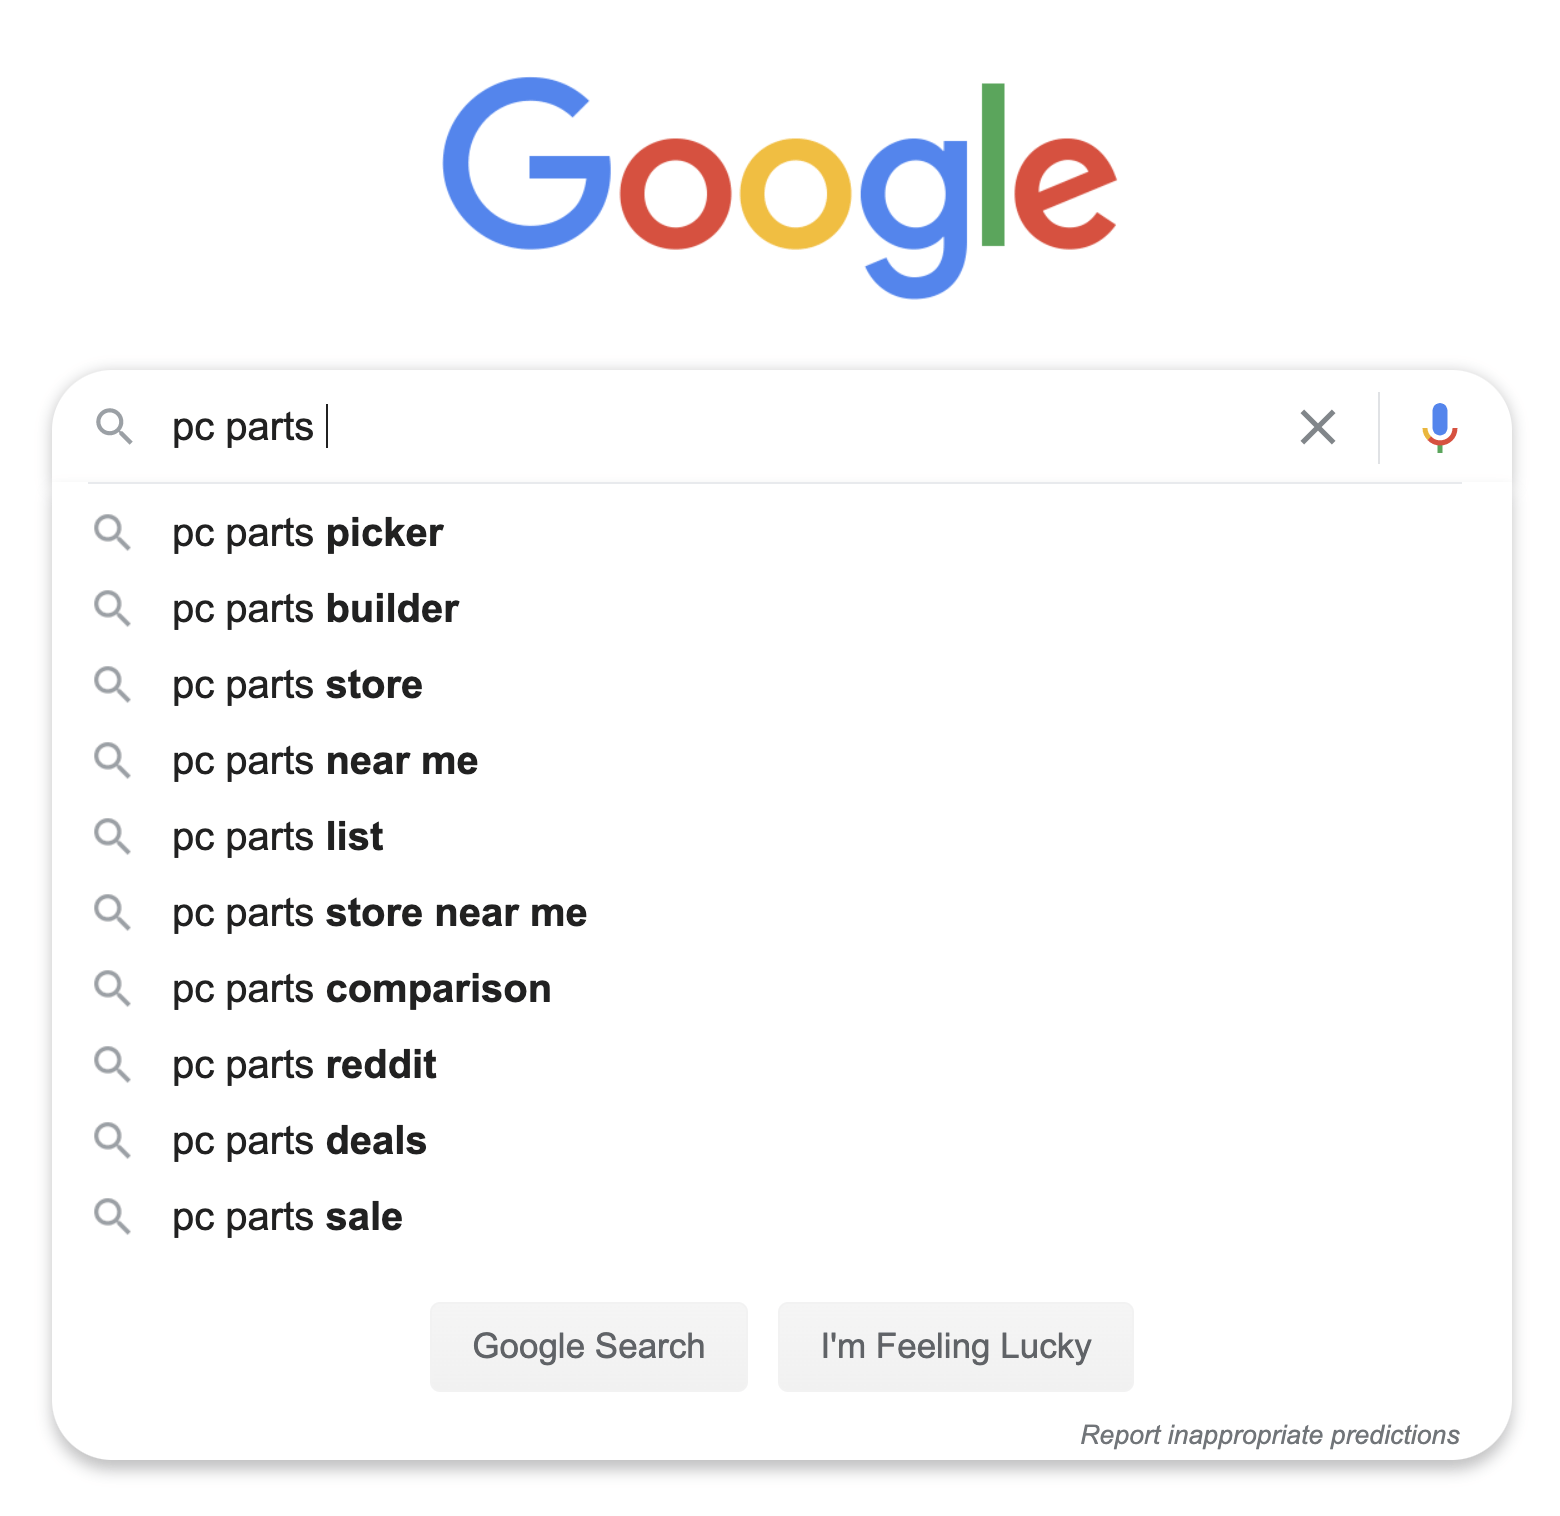 10 autocomplete results